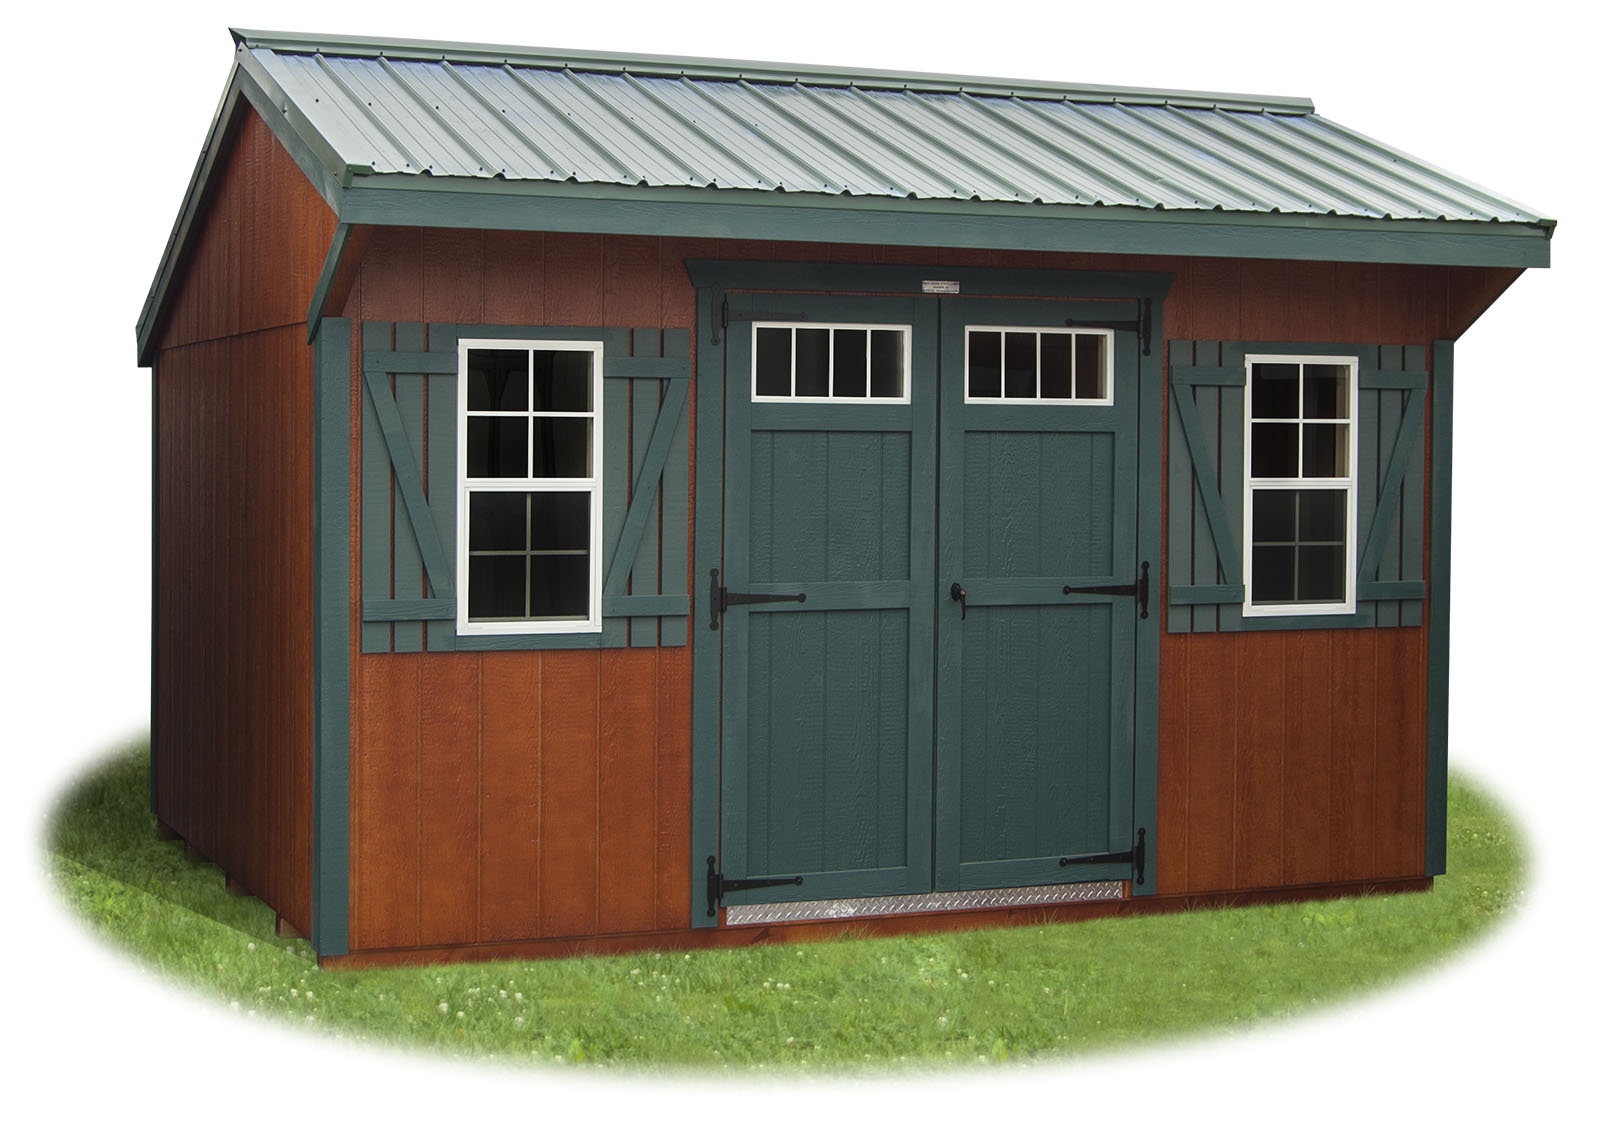 10x16 LP Sided Cottage Storage Shed From Pine Creek Structures  sc 1 st  Pine Creek Structures & Cottage Style Storage Sheds | Pine Creek Structures